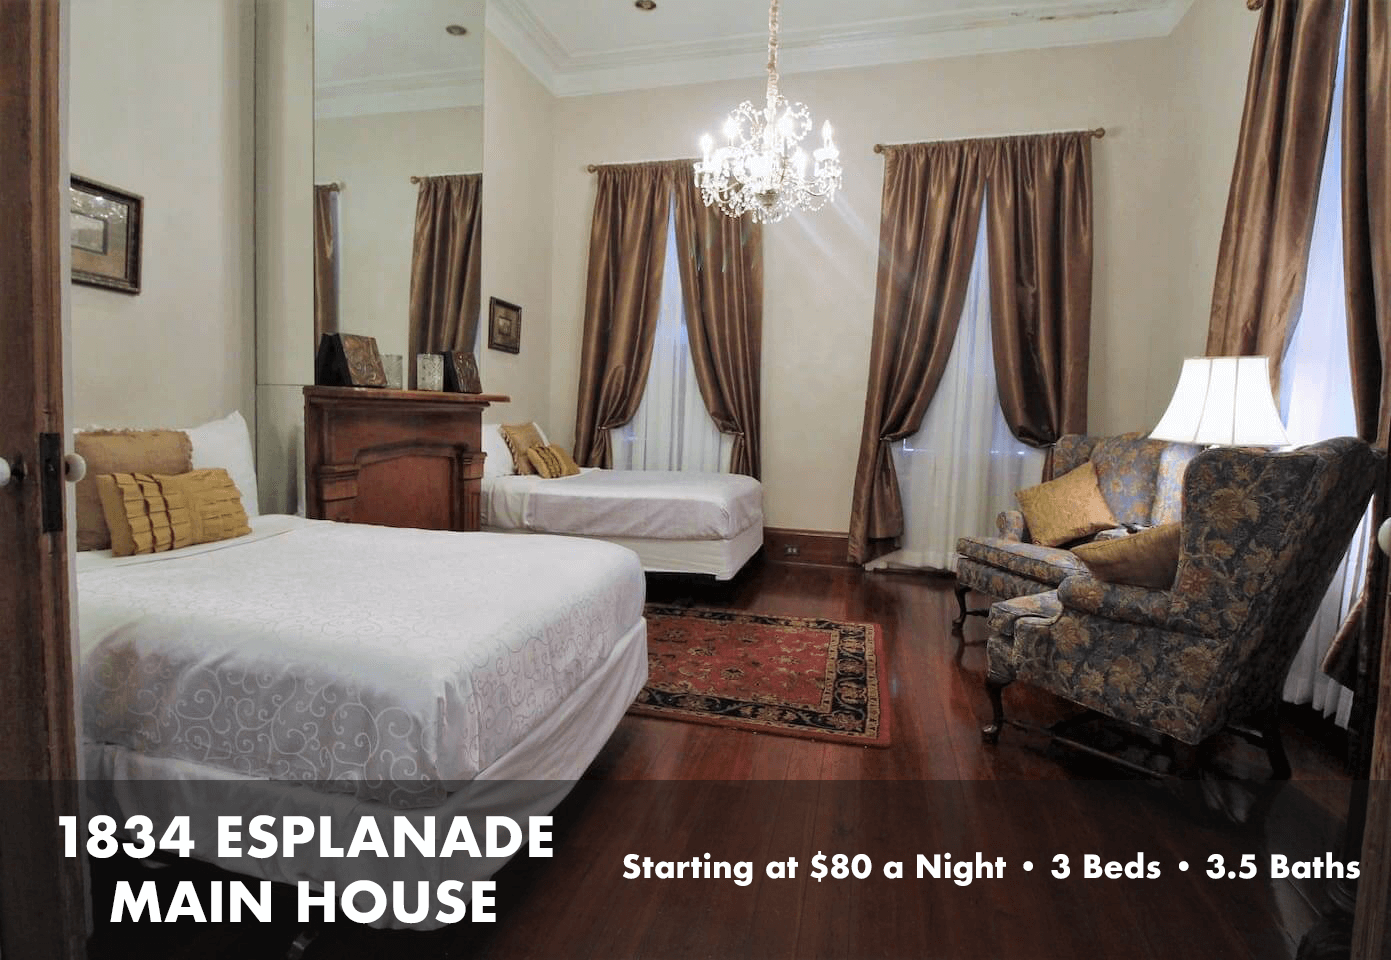 1834 Esplanade Main House - Luxury Rental in New Orleans